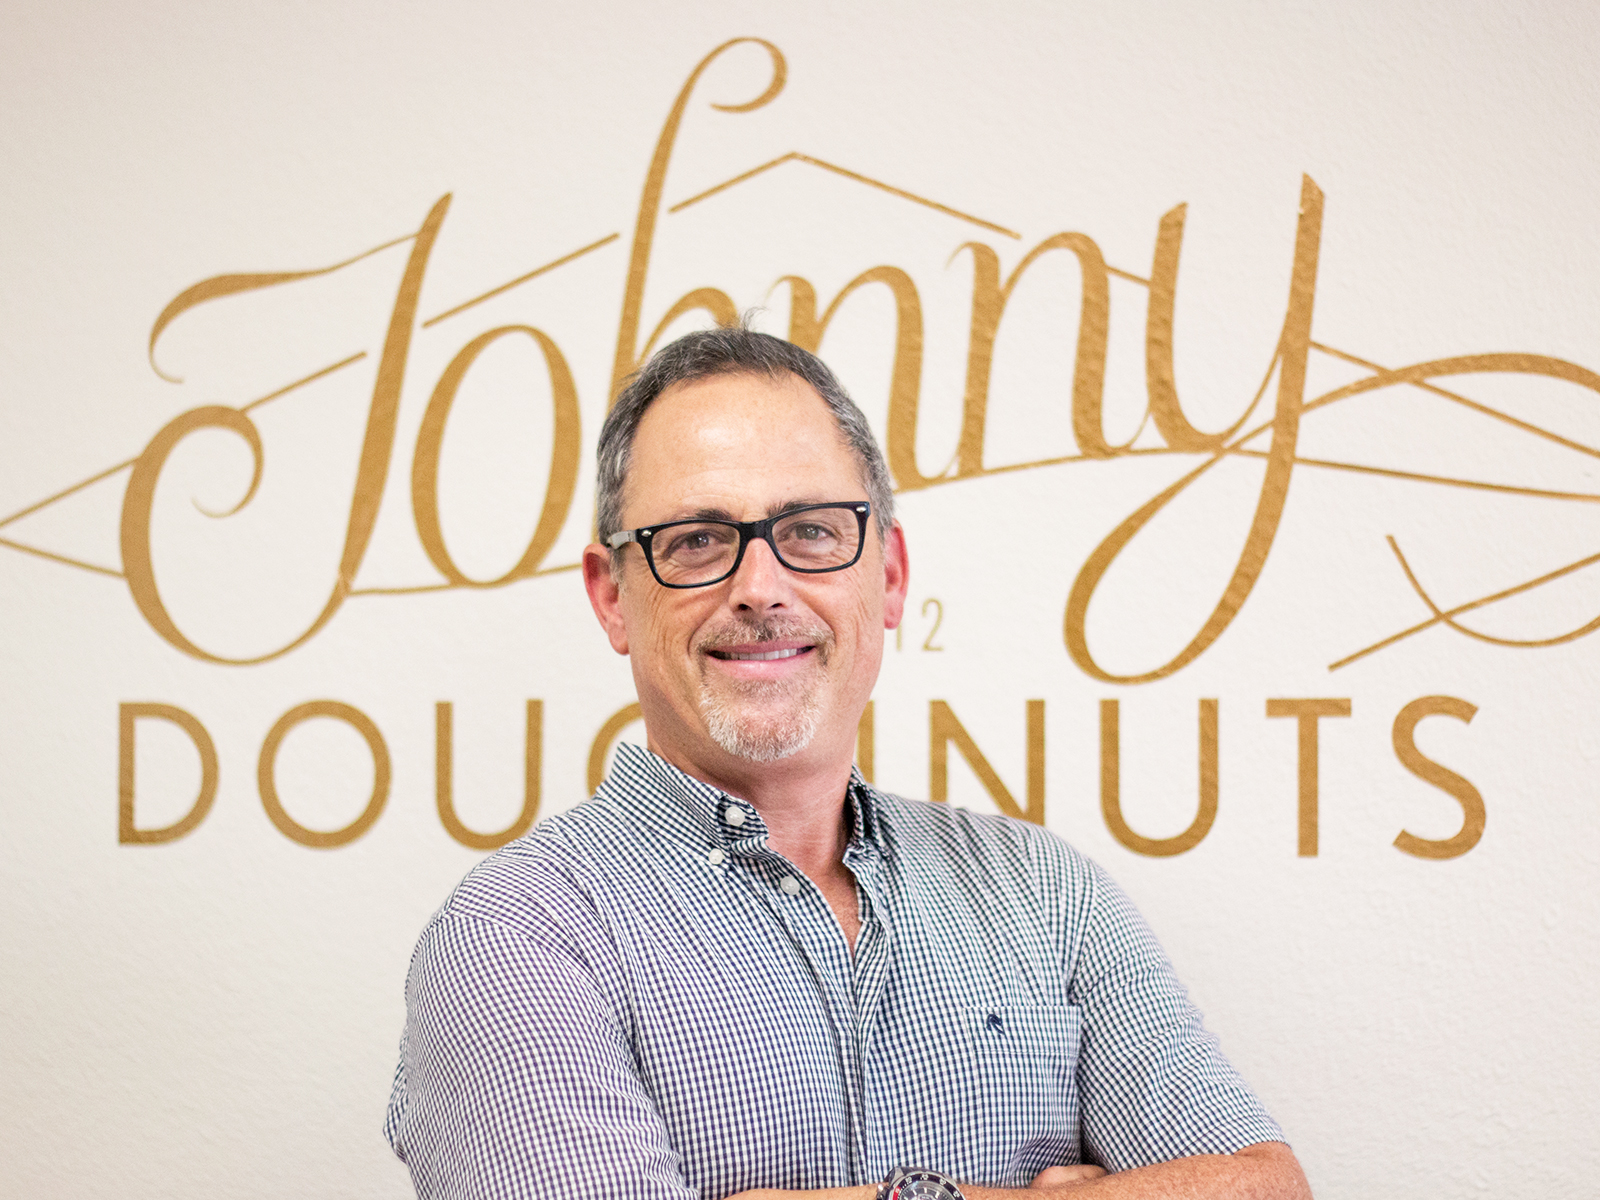 craig blum of johnny doughnuts